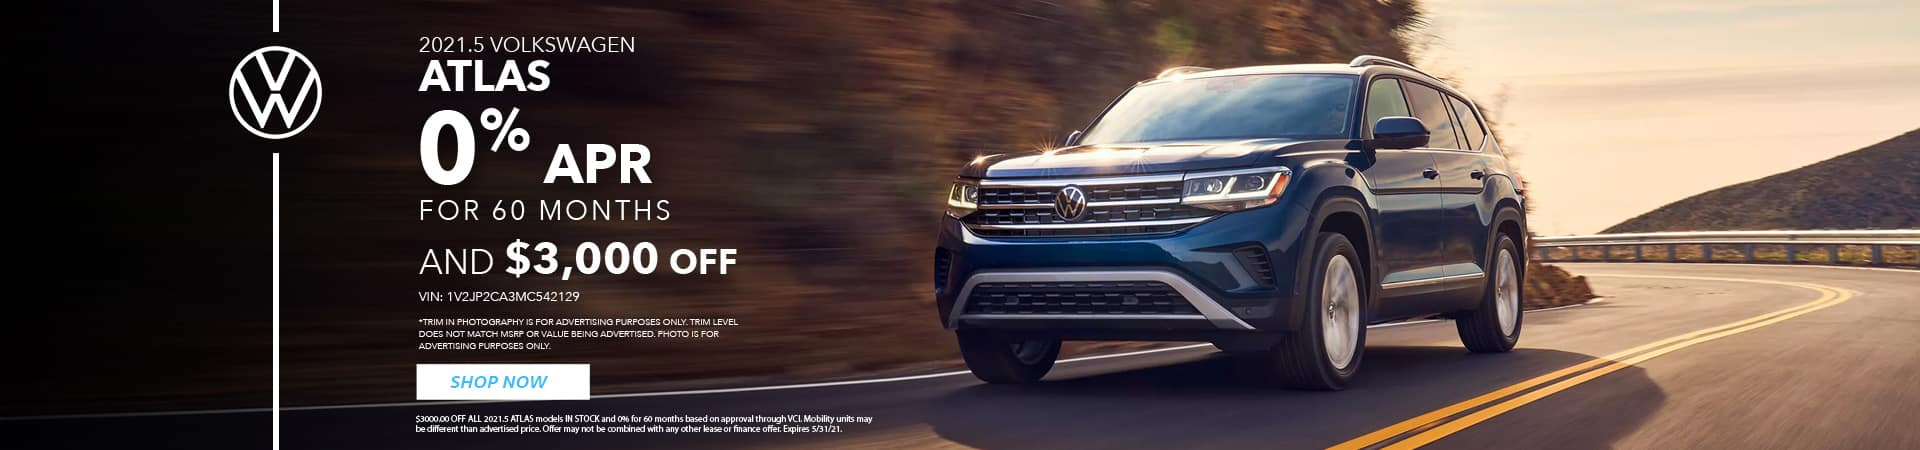 mobile-vw-atlas-may-banners